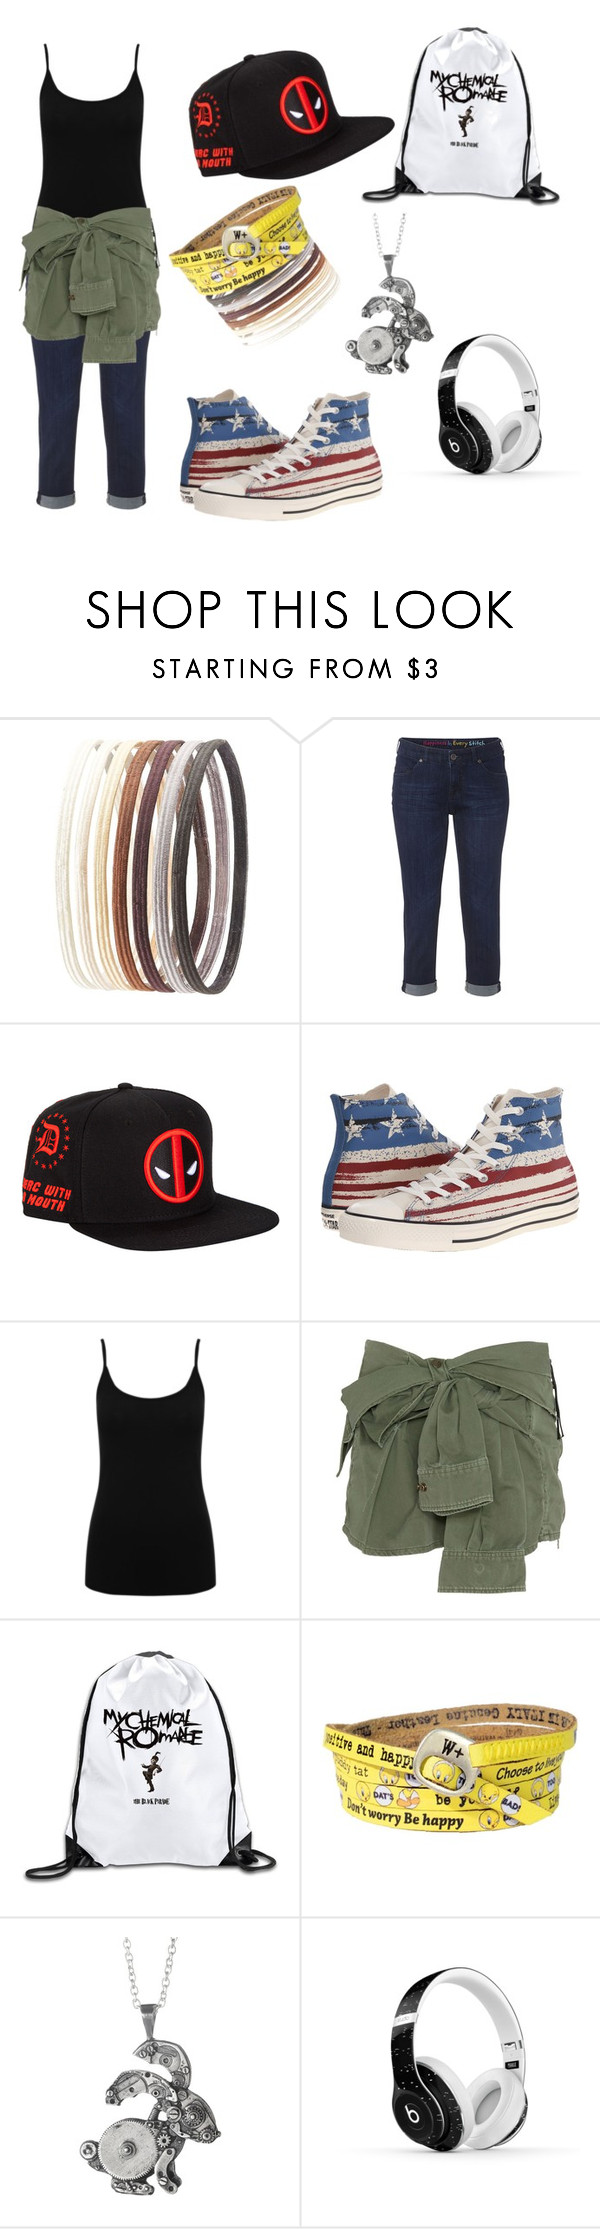 """""""Day In Town"""" by xxgeekygeekxx ❤ liked on Polyvore featuring Charlotte Russe, White Stuff, Converse, M&Co, Faith Connexion and Beats by Dr. Dre"""